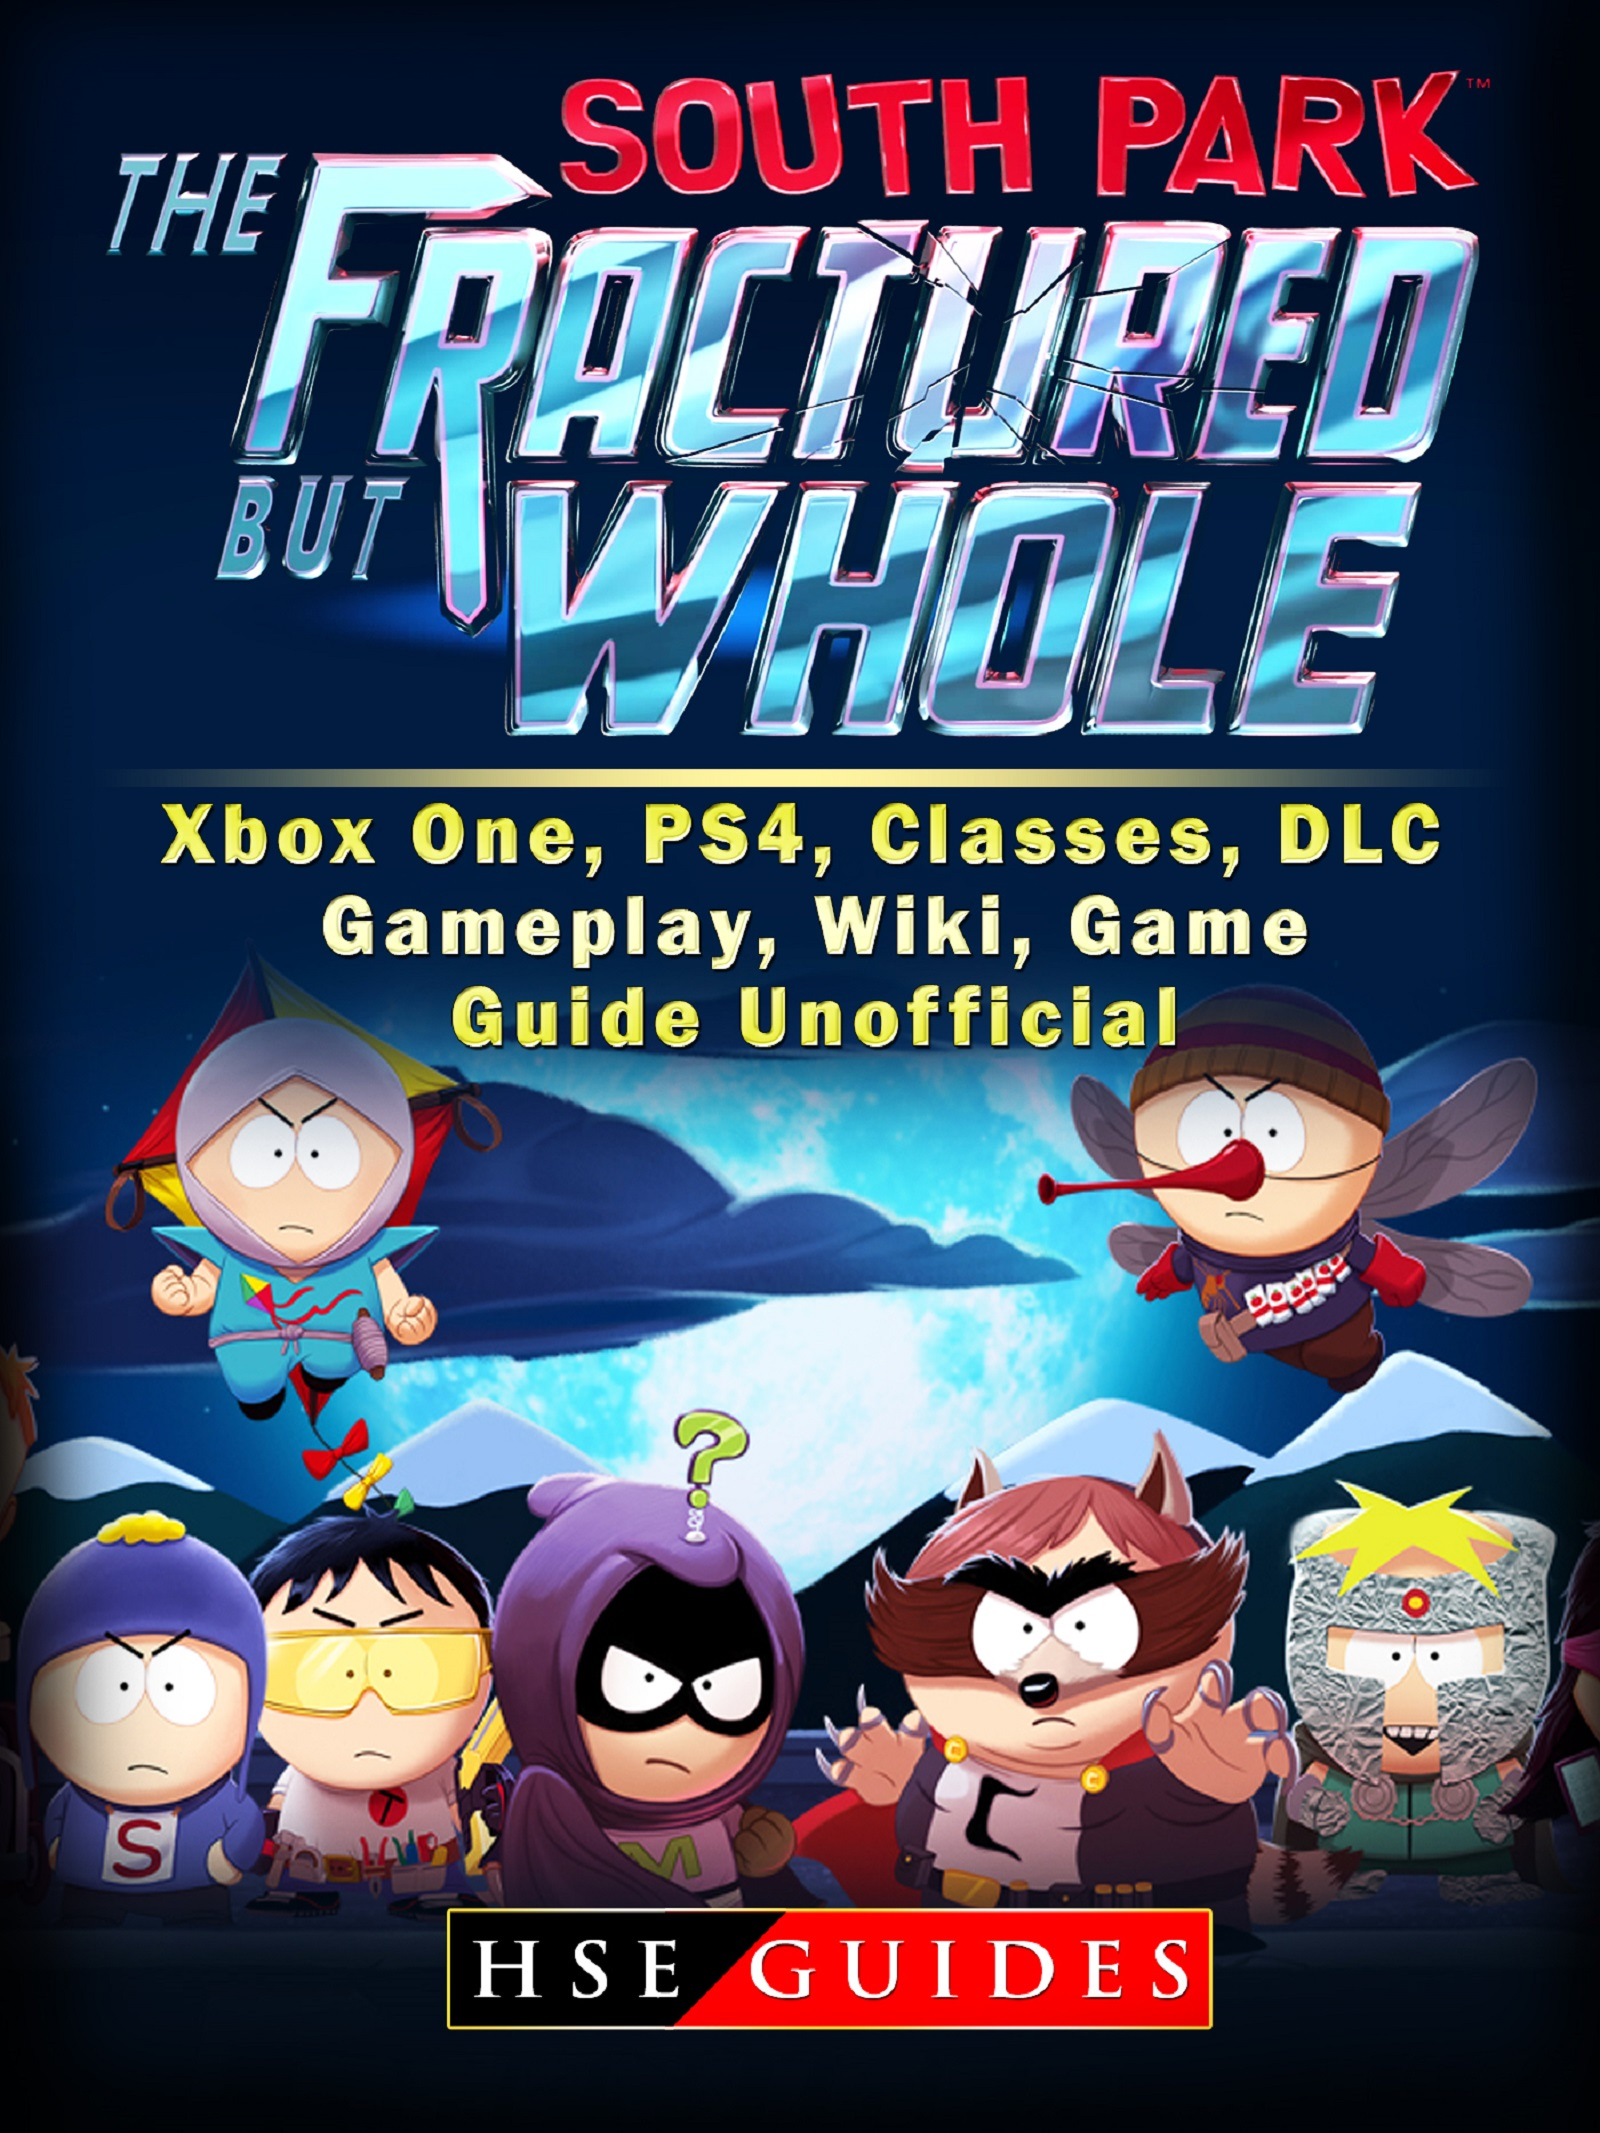 South Park The Fractured But Whole Xbox One, PS4, Classes, DLC, Gameplay, Wiki, Game Guide Unofficial By Hse Guides